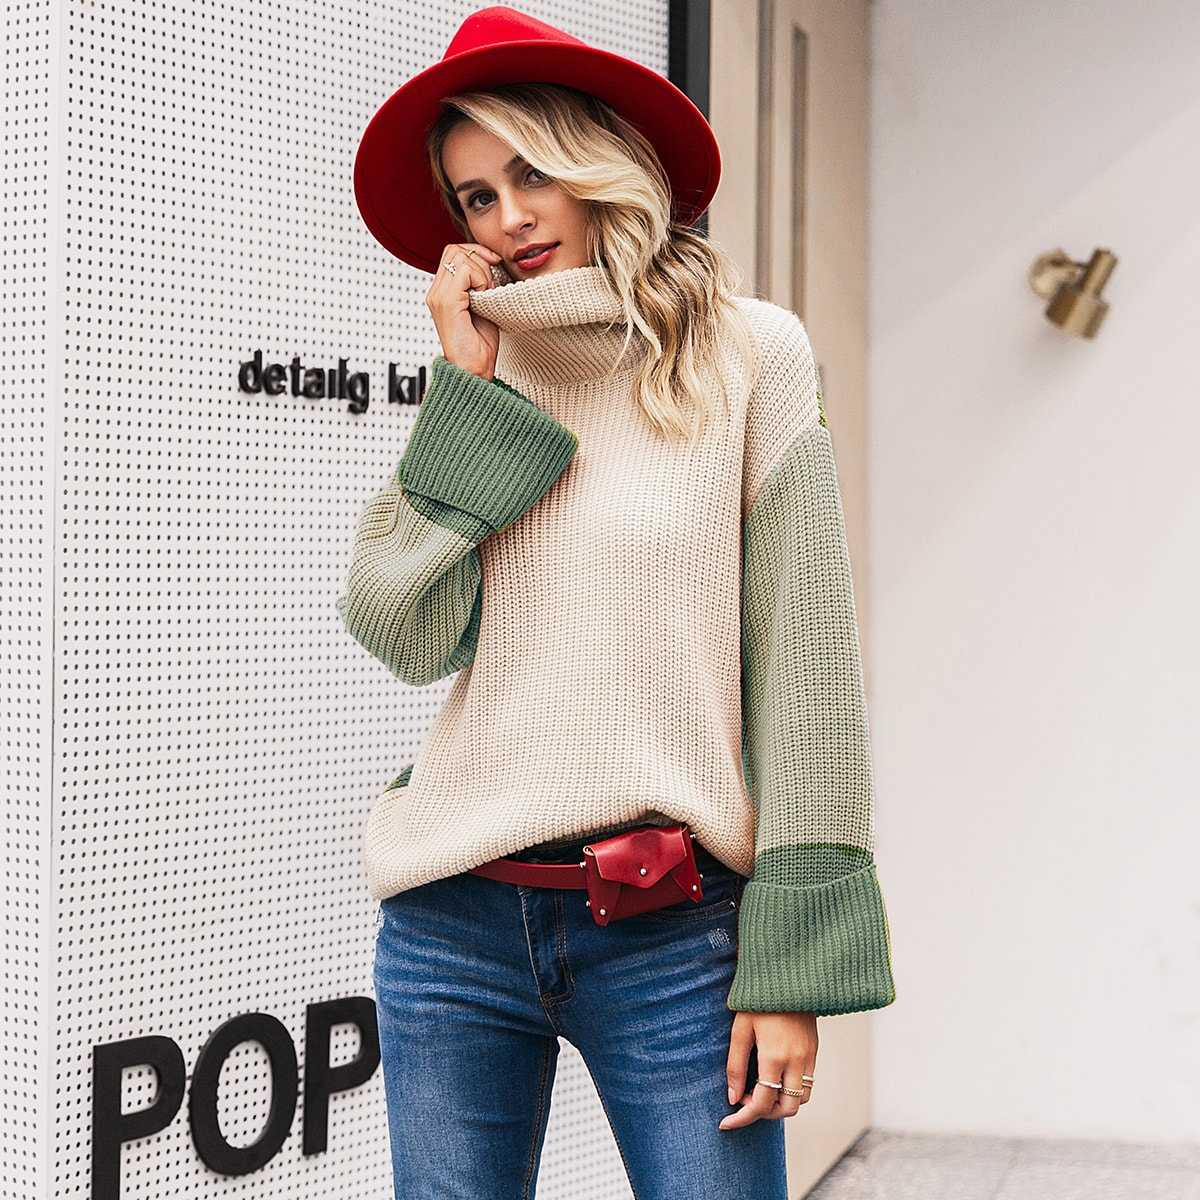 Simplee Color-block Turtle Neck Jumper in Multicolor by ROMWE on GOOFASH